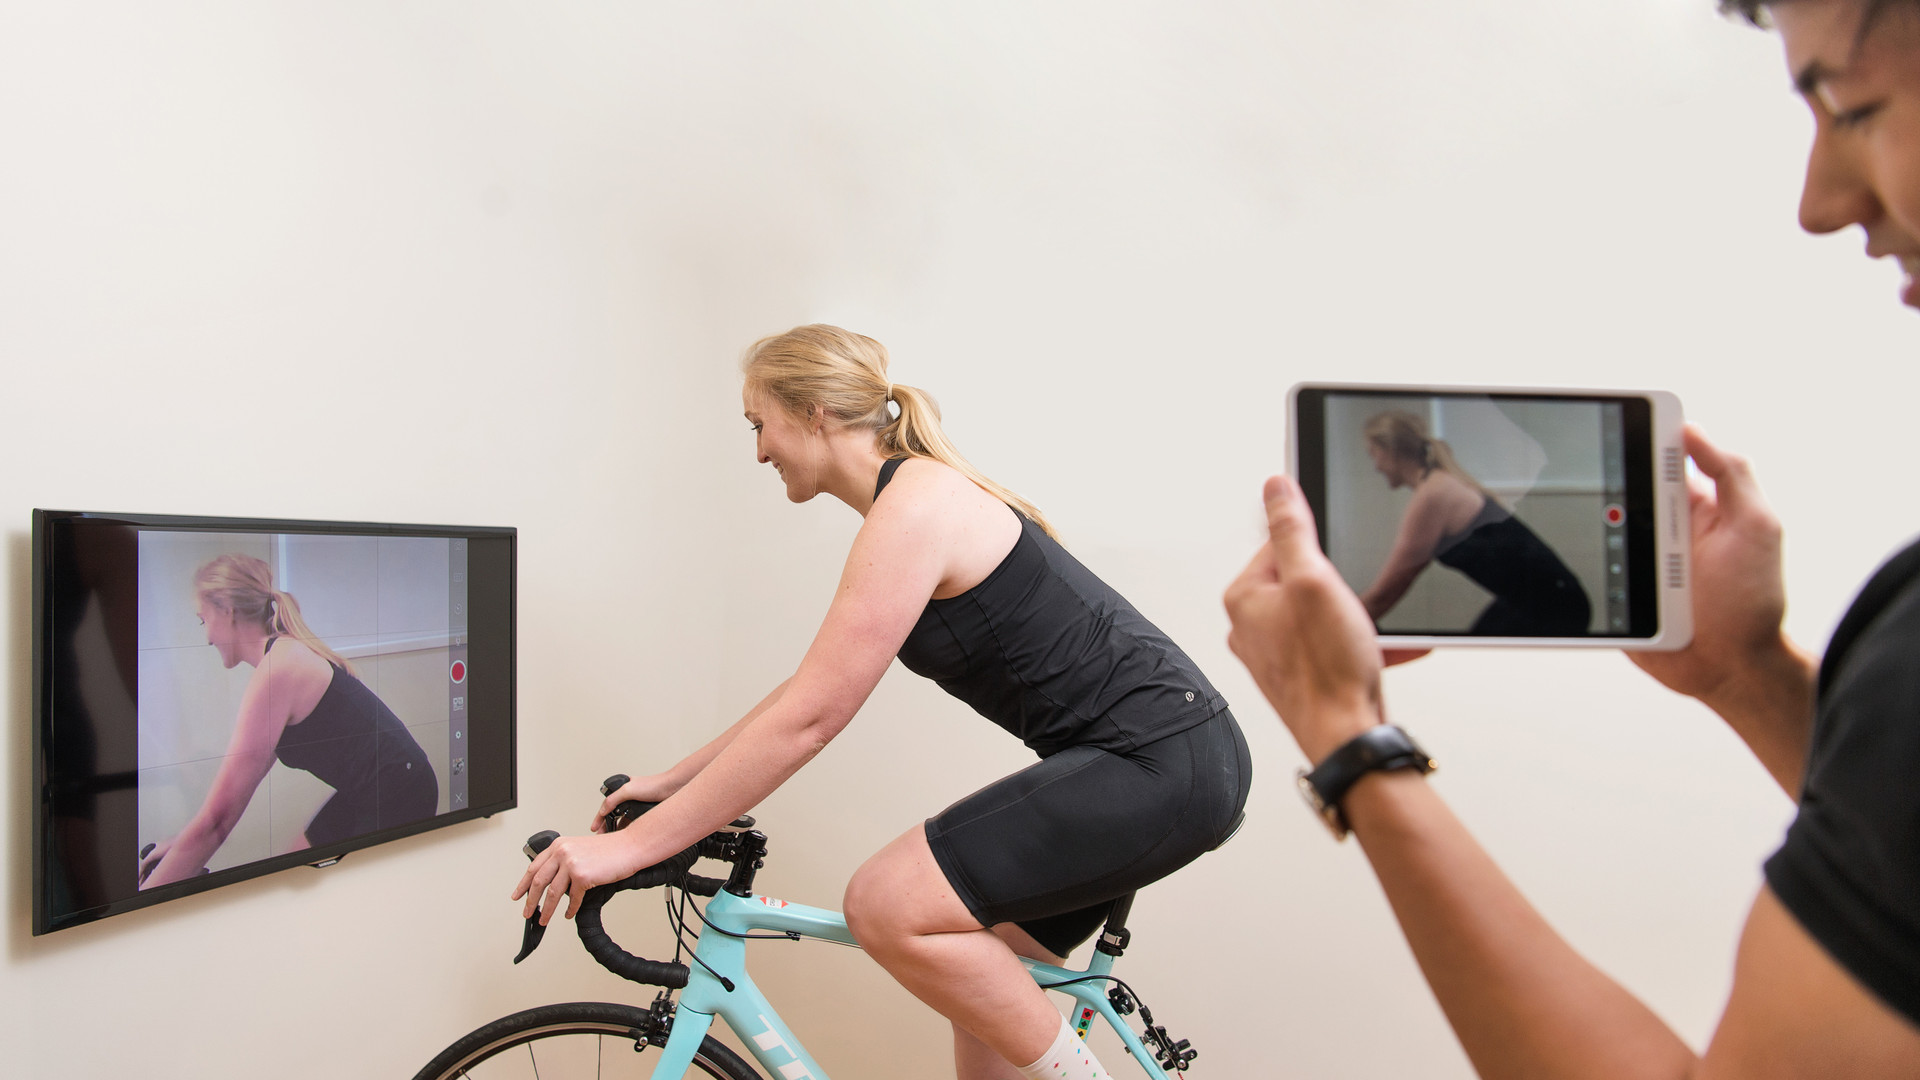 Video Analysis during Bike-fit